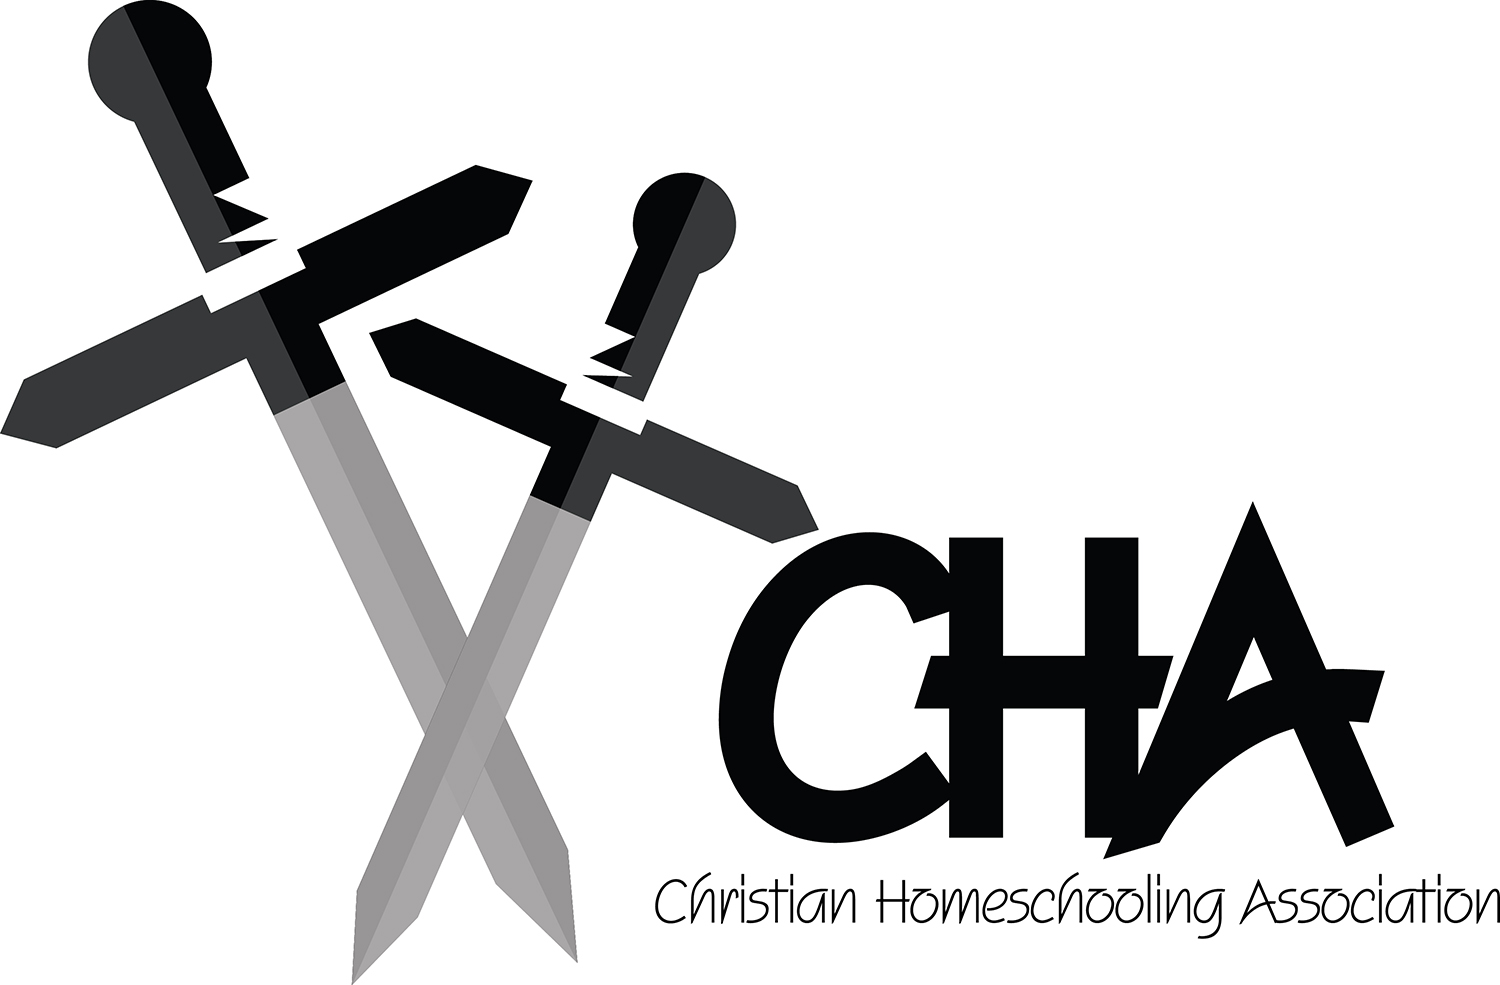 Christian Homeschooling Association